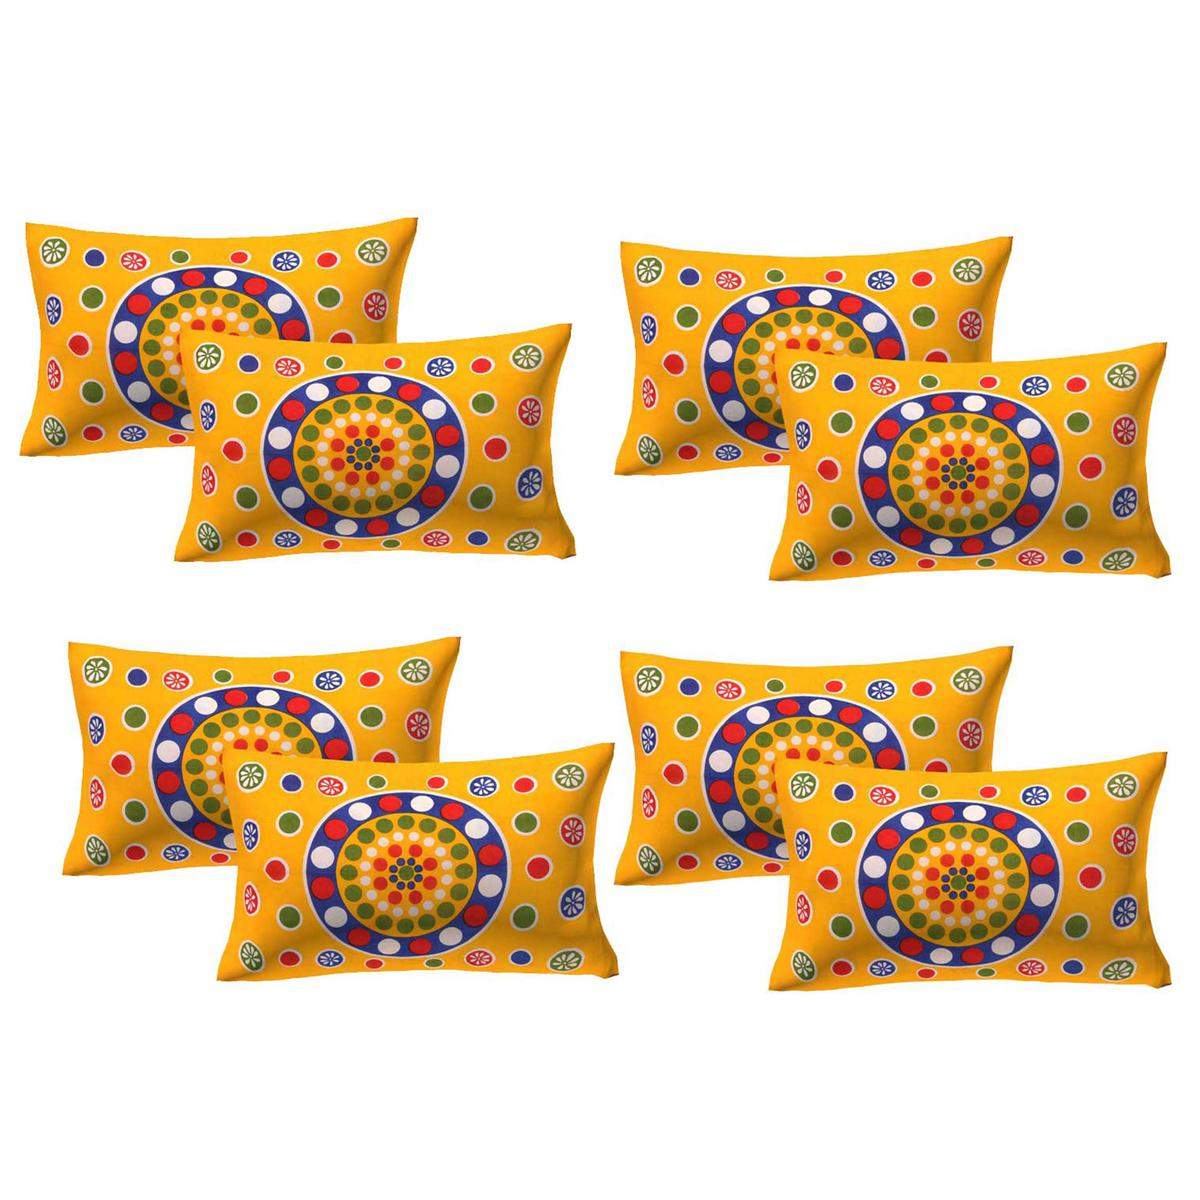 AJ Home - Yellow Colored 100% Cotton Printed Pillow Covers 4 Sets (8 Pieces)